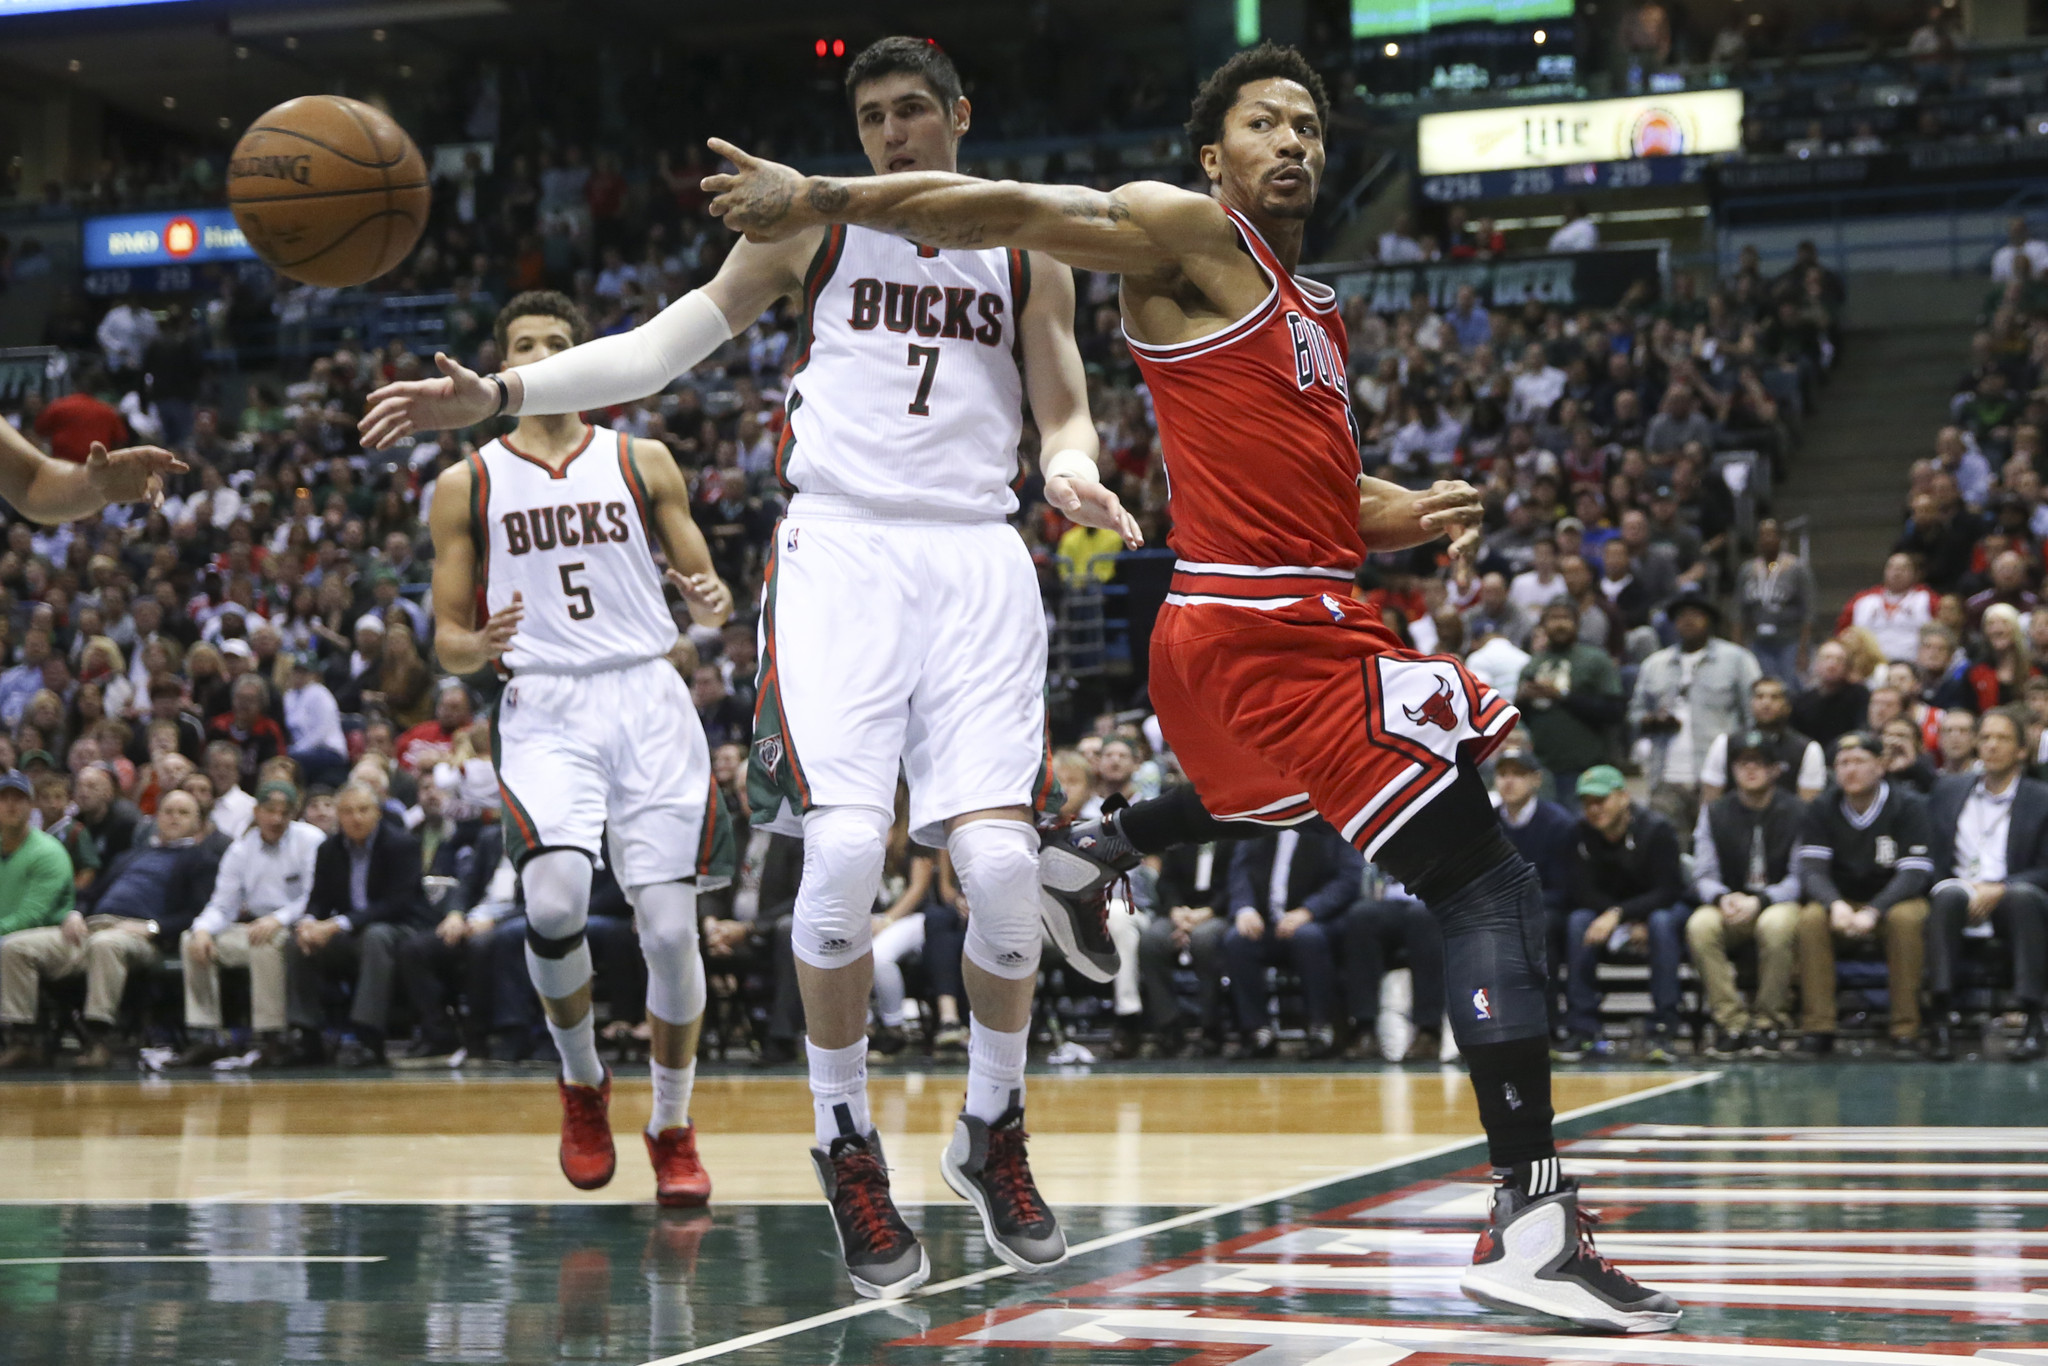 579f9c8e8f3 Derrick Rose scores 34 in double-overtime win  Bulls up 3-0 in series